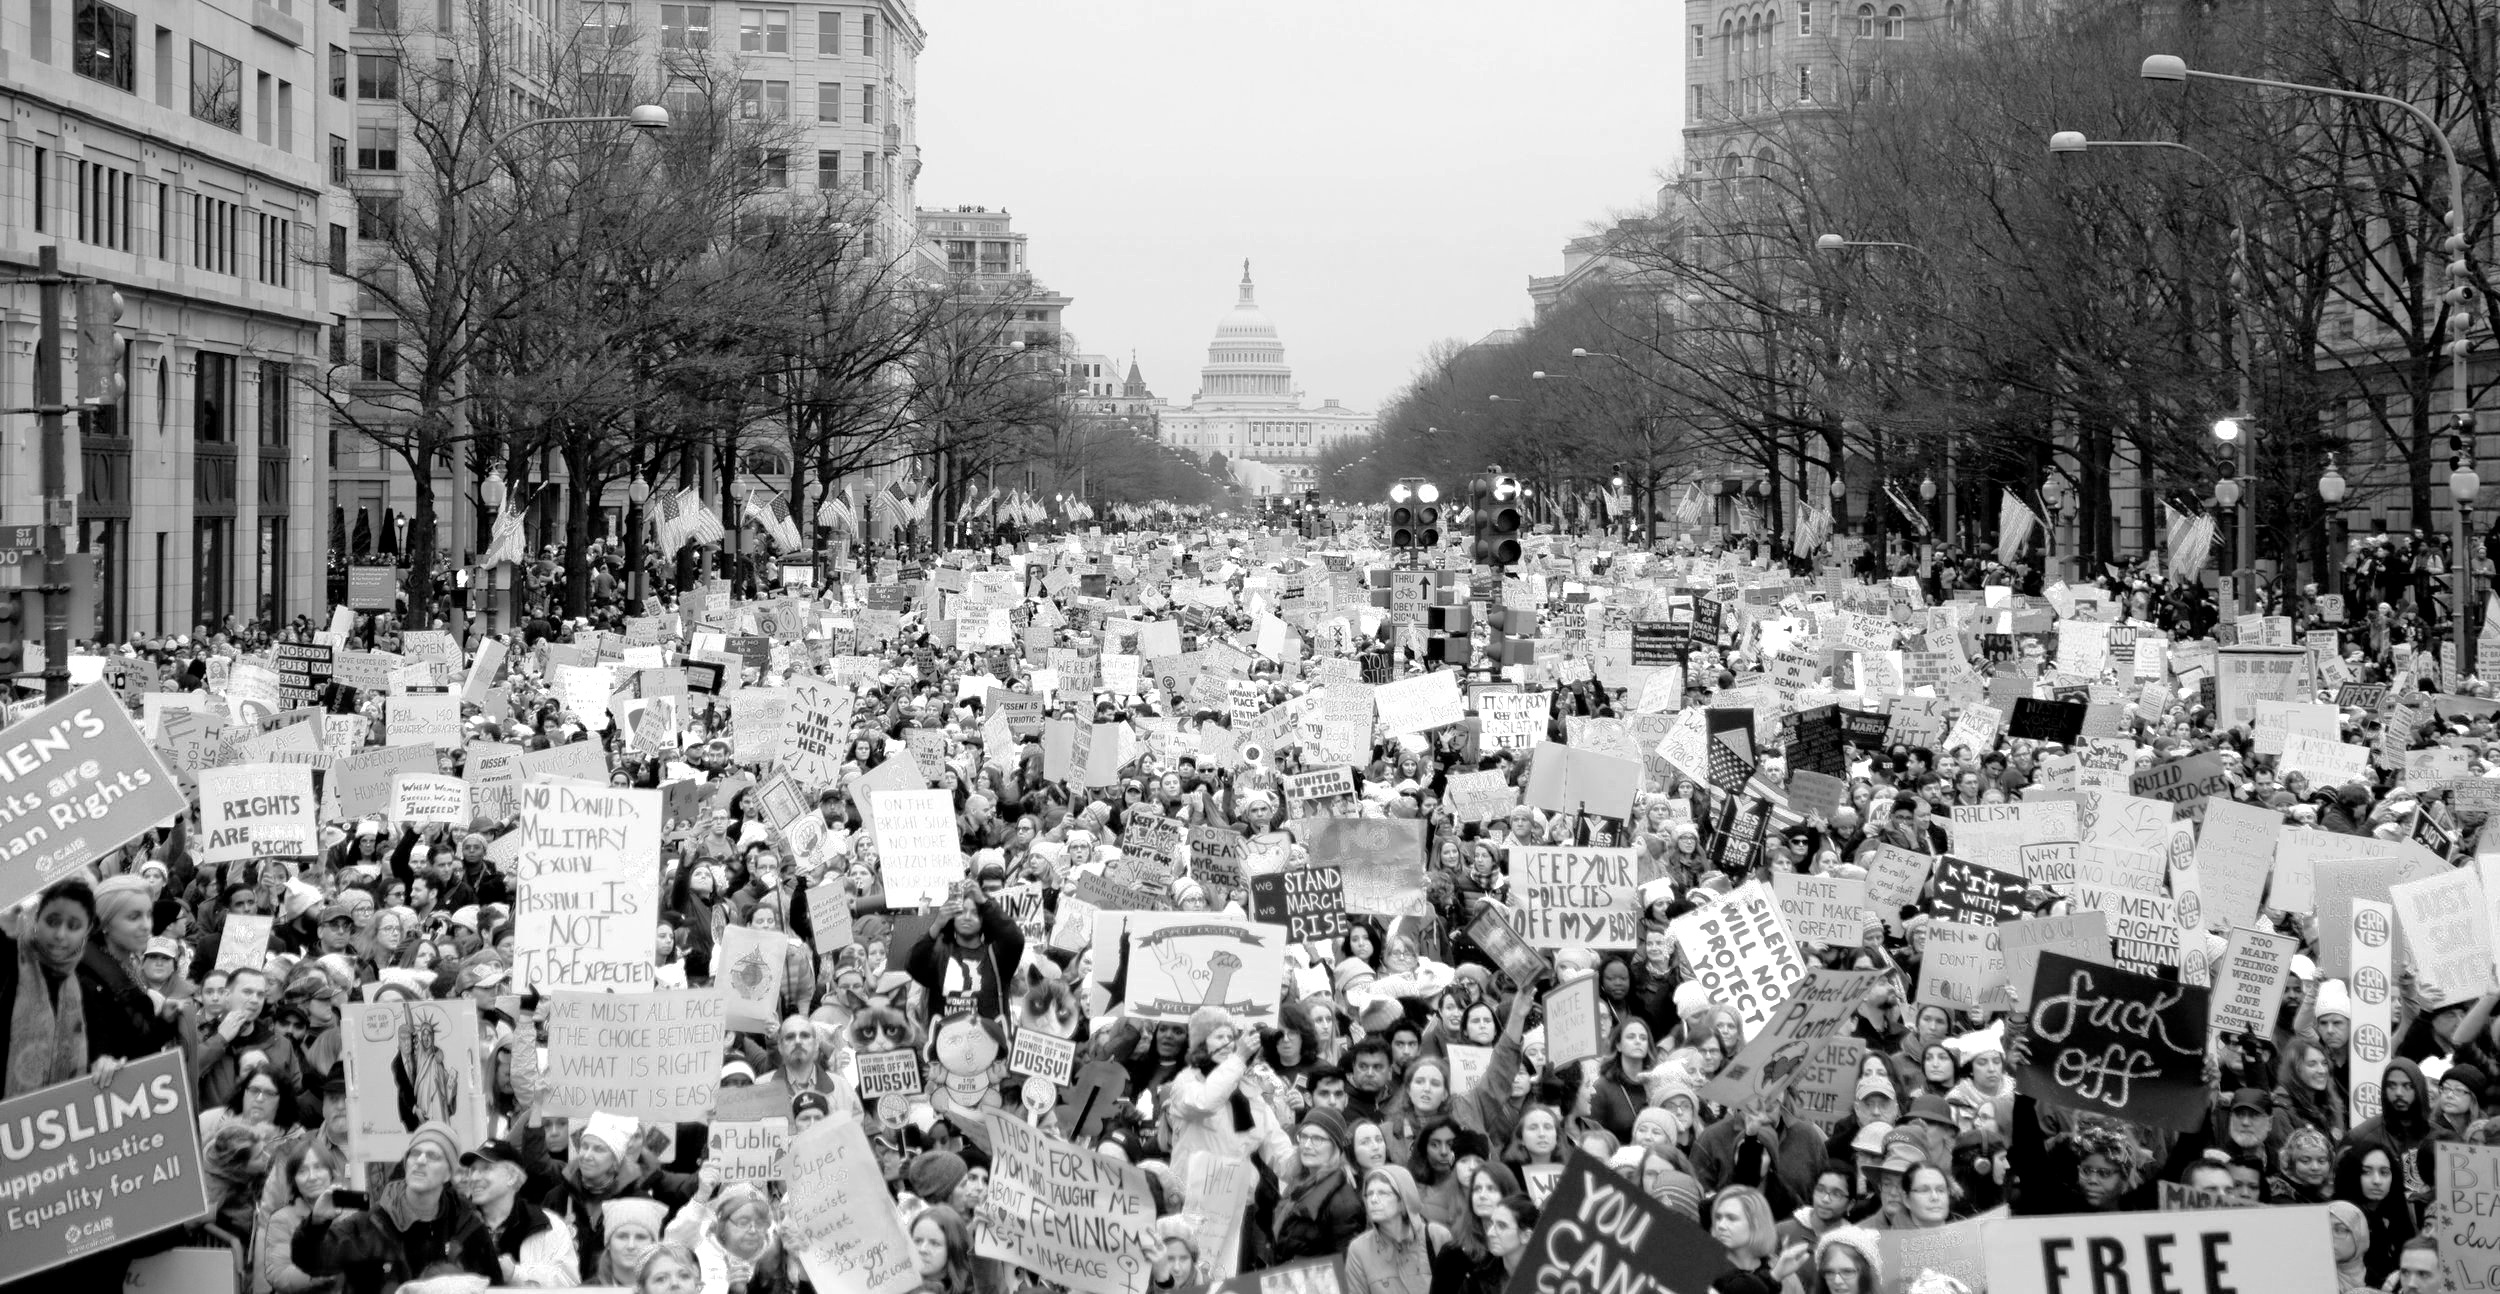 image of the women's march on Washington